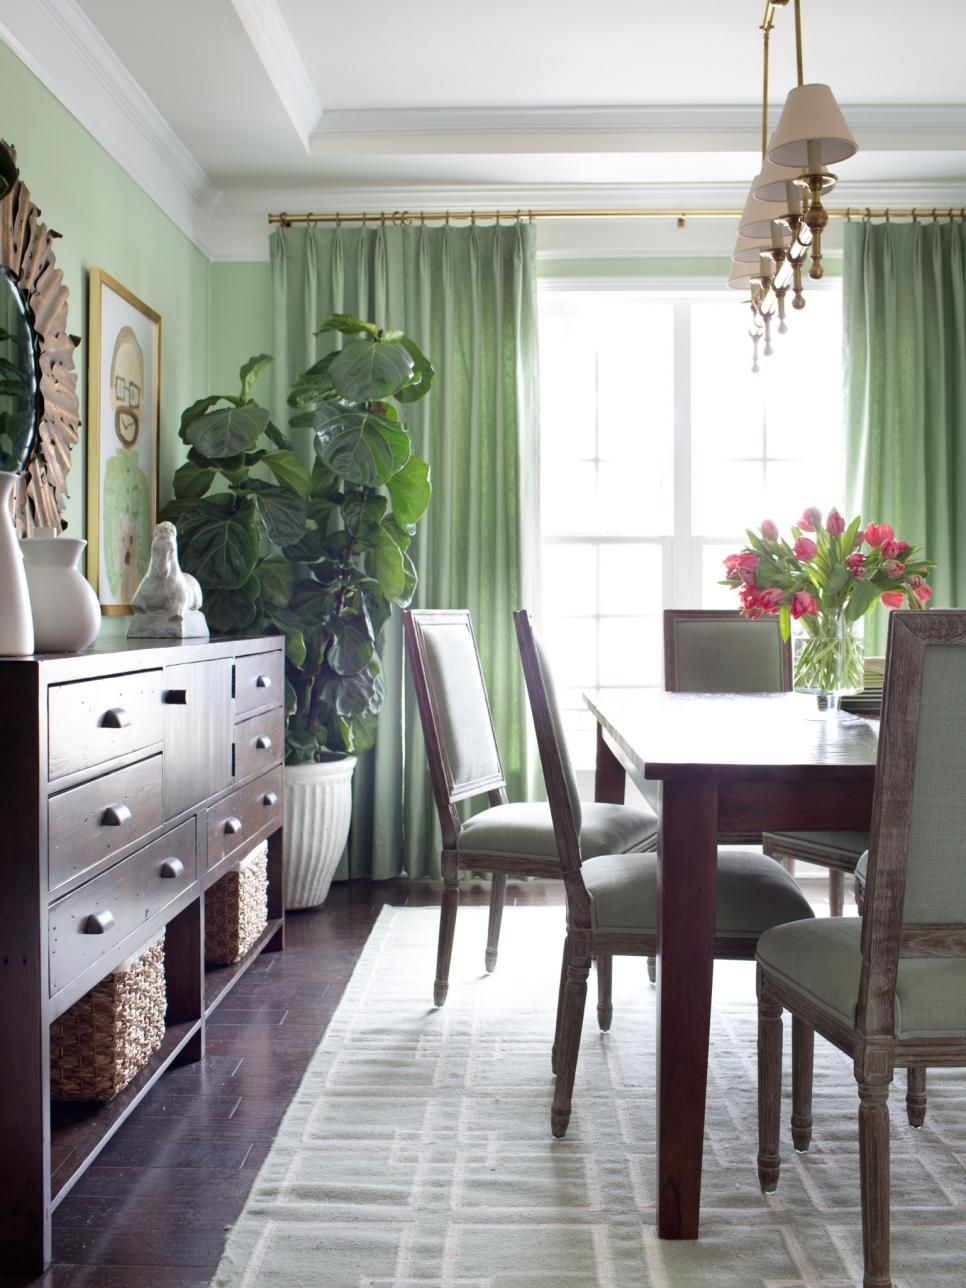 Bring Style And Substance To Your Dining Room With Fun Family Friendly Touches That Are As Pretty They Practical